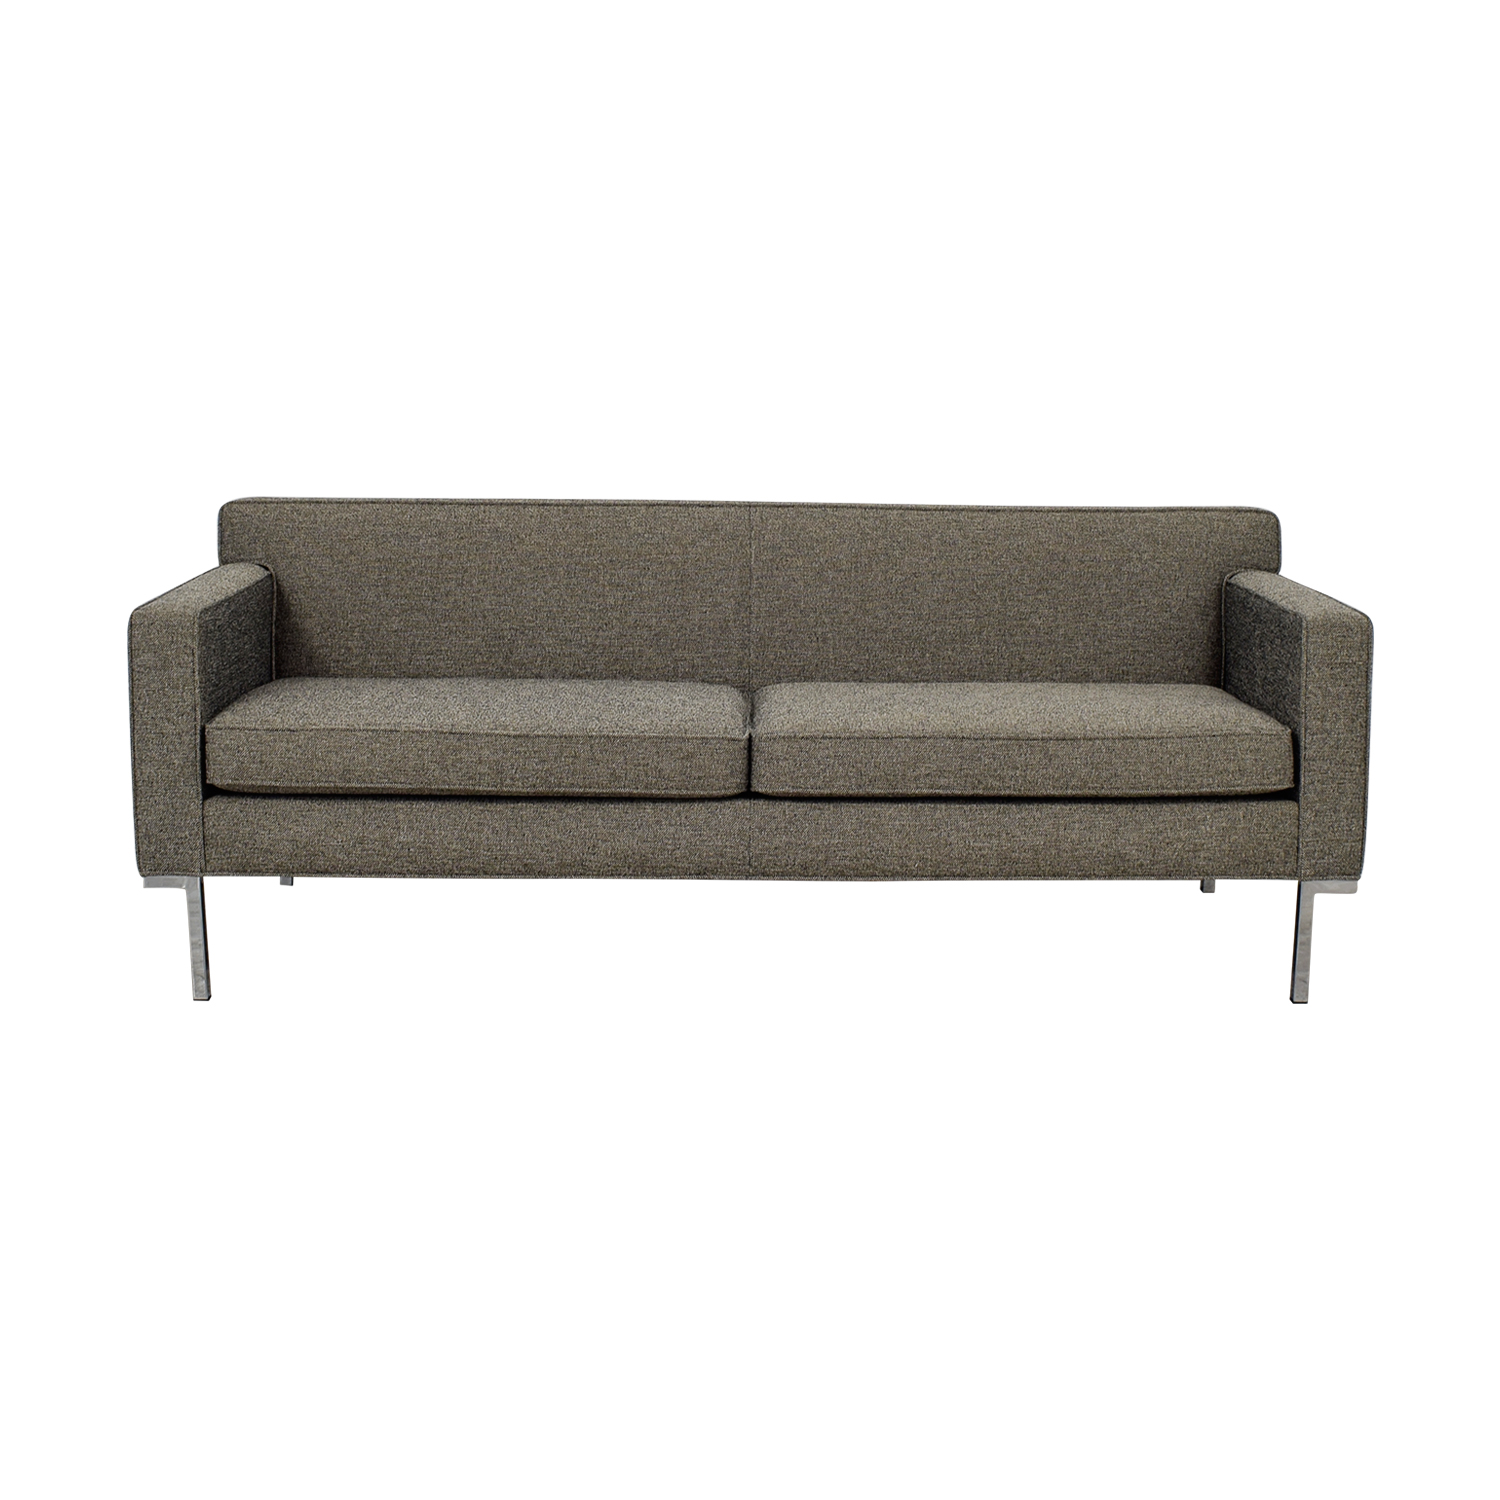 dwr theatre sofa review canasta classic sofas used for sale